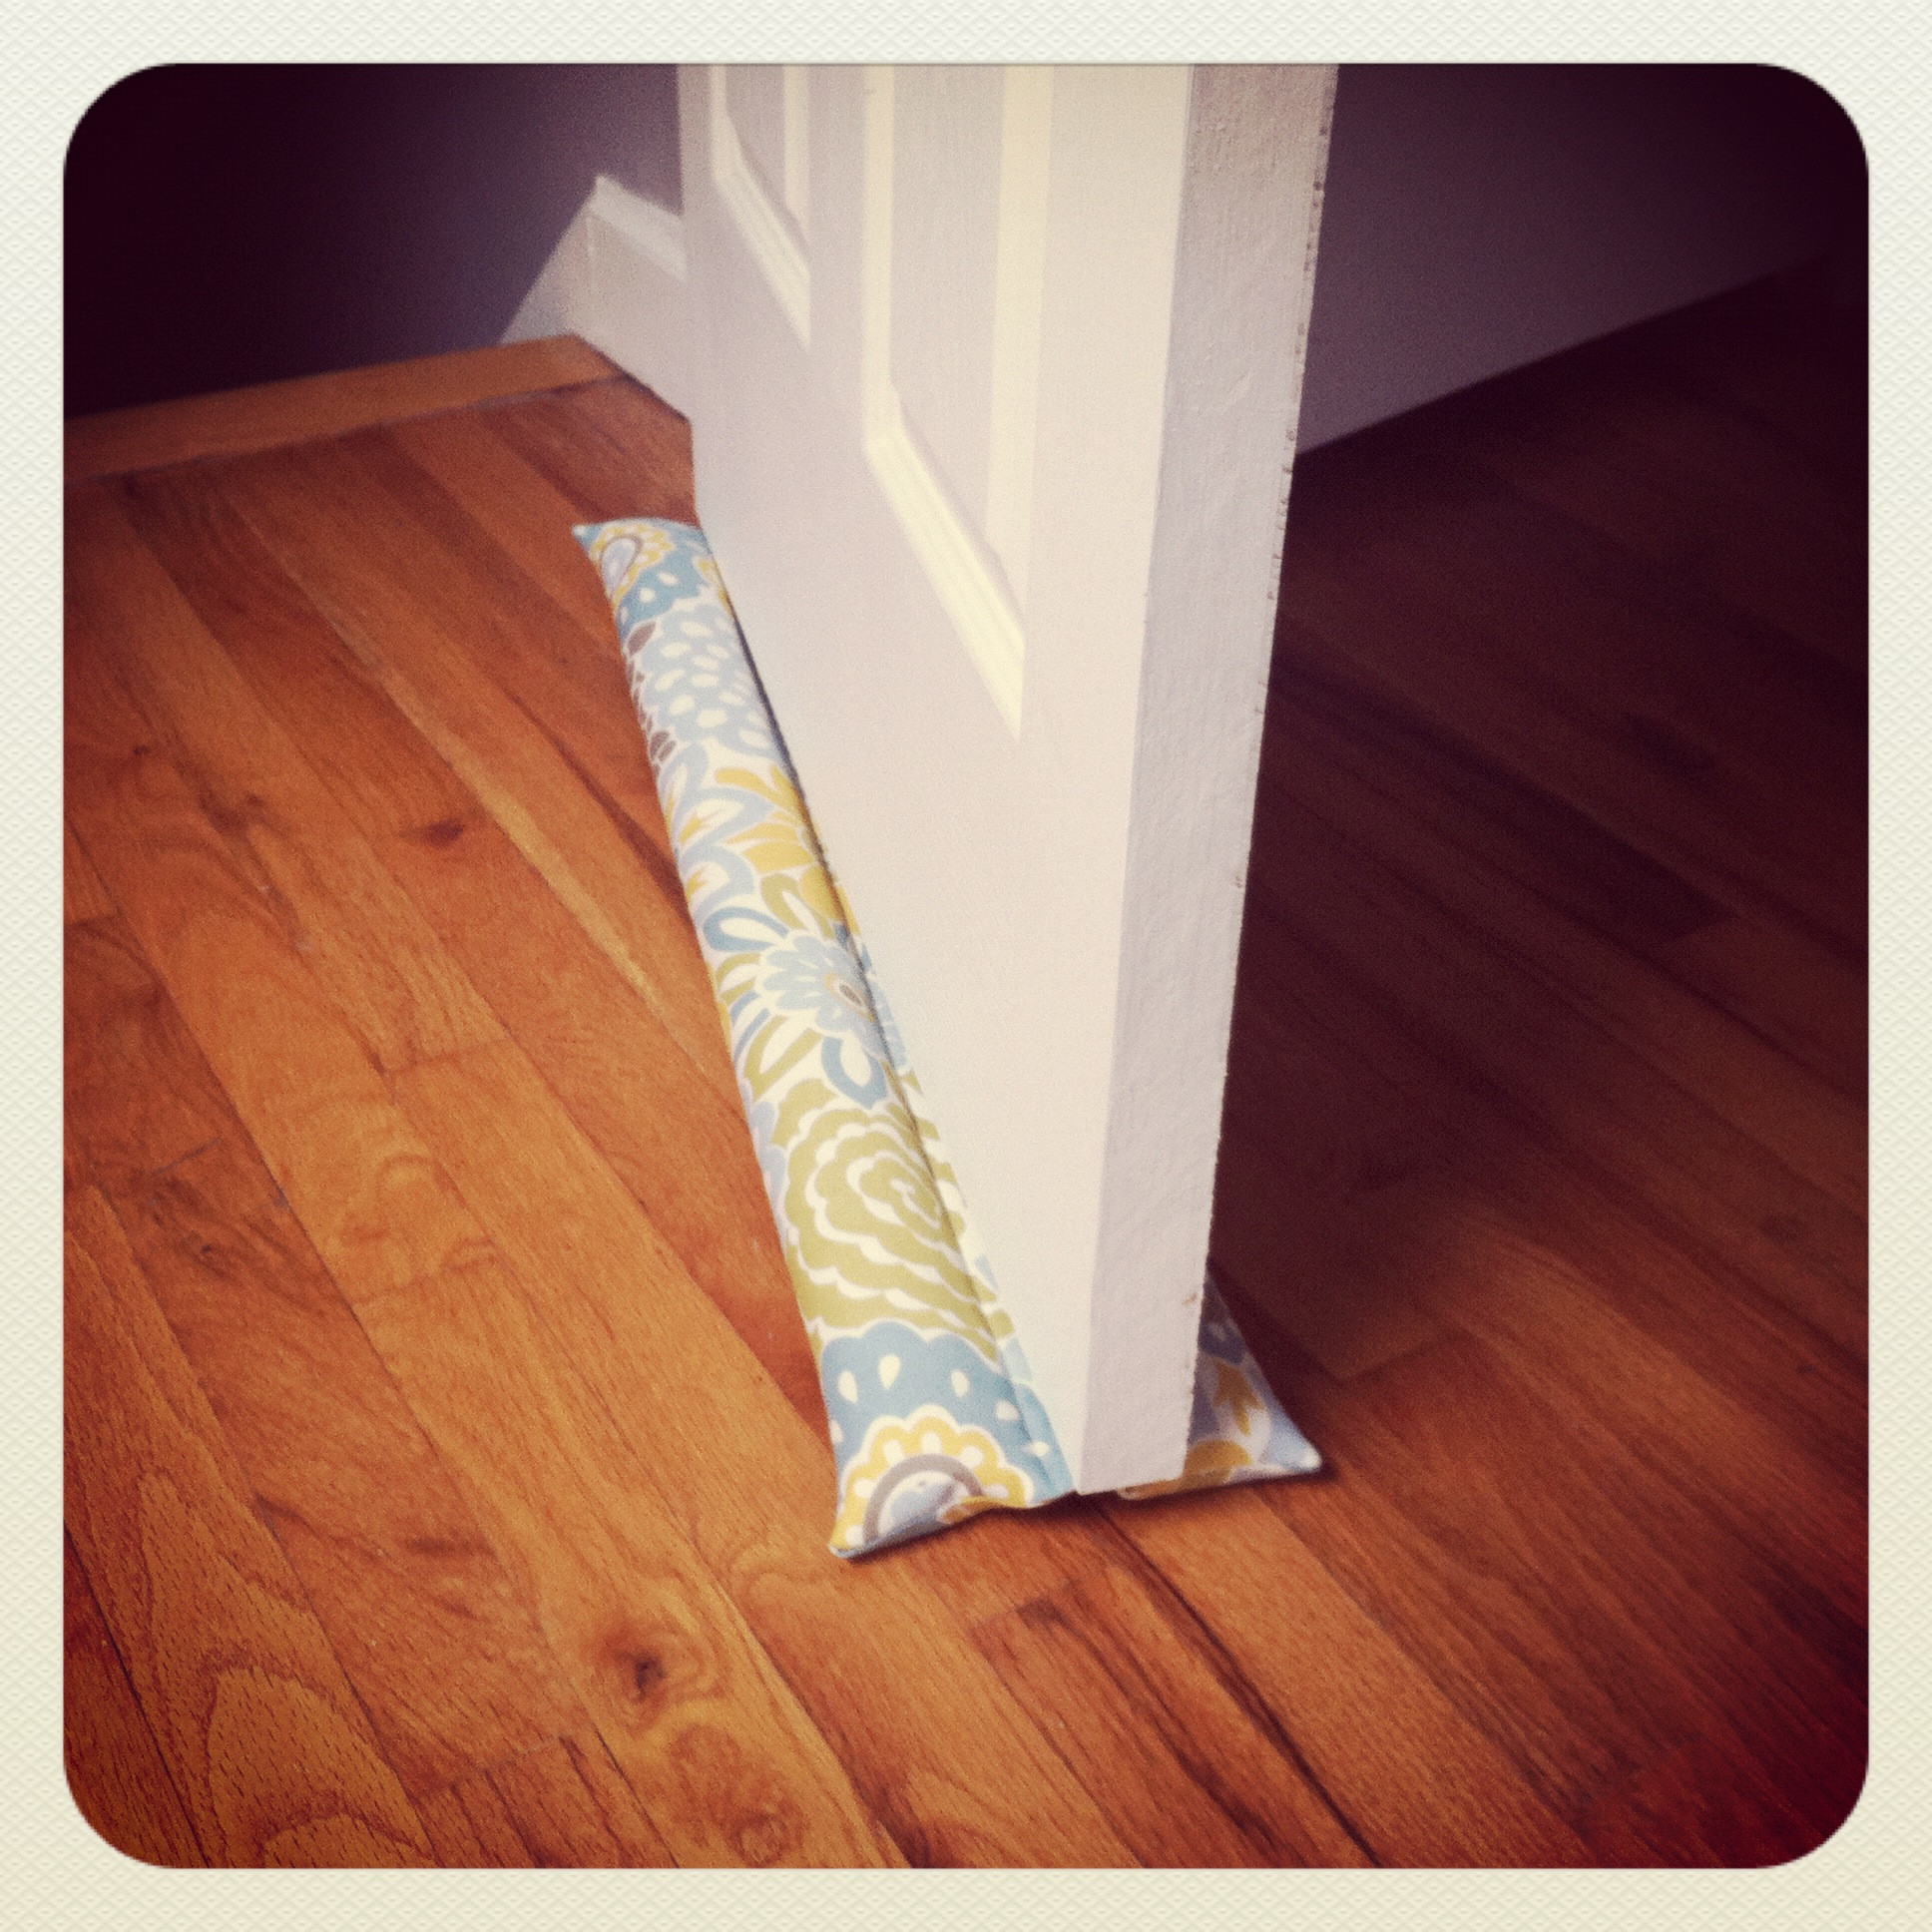 Best ideas about Door Draft Stopper DIY . Save or Pin DIY Draft Stopper Now.